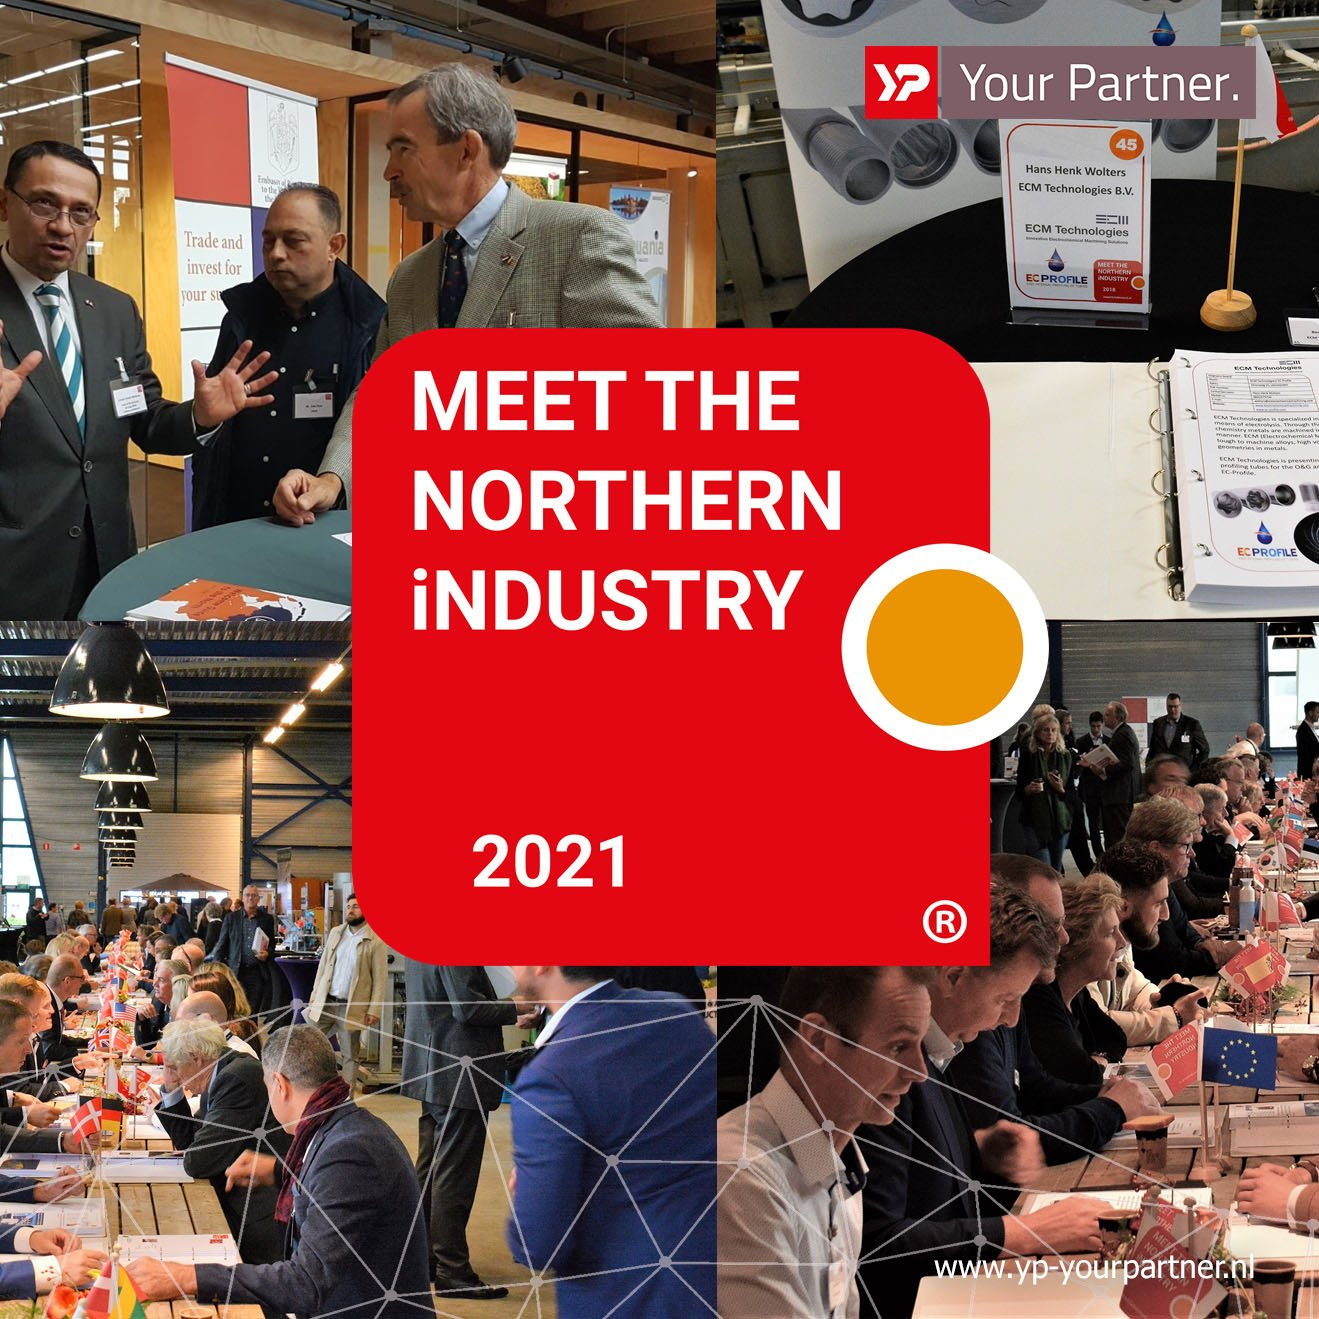 Meet the Northern Industry 2021